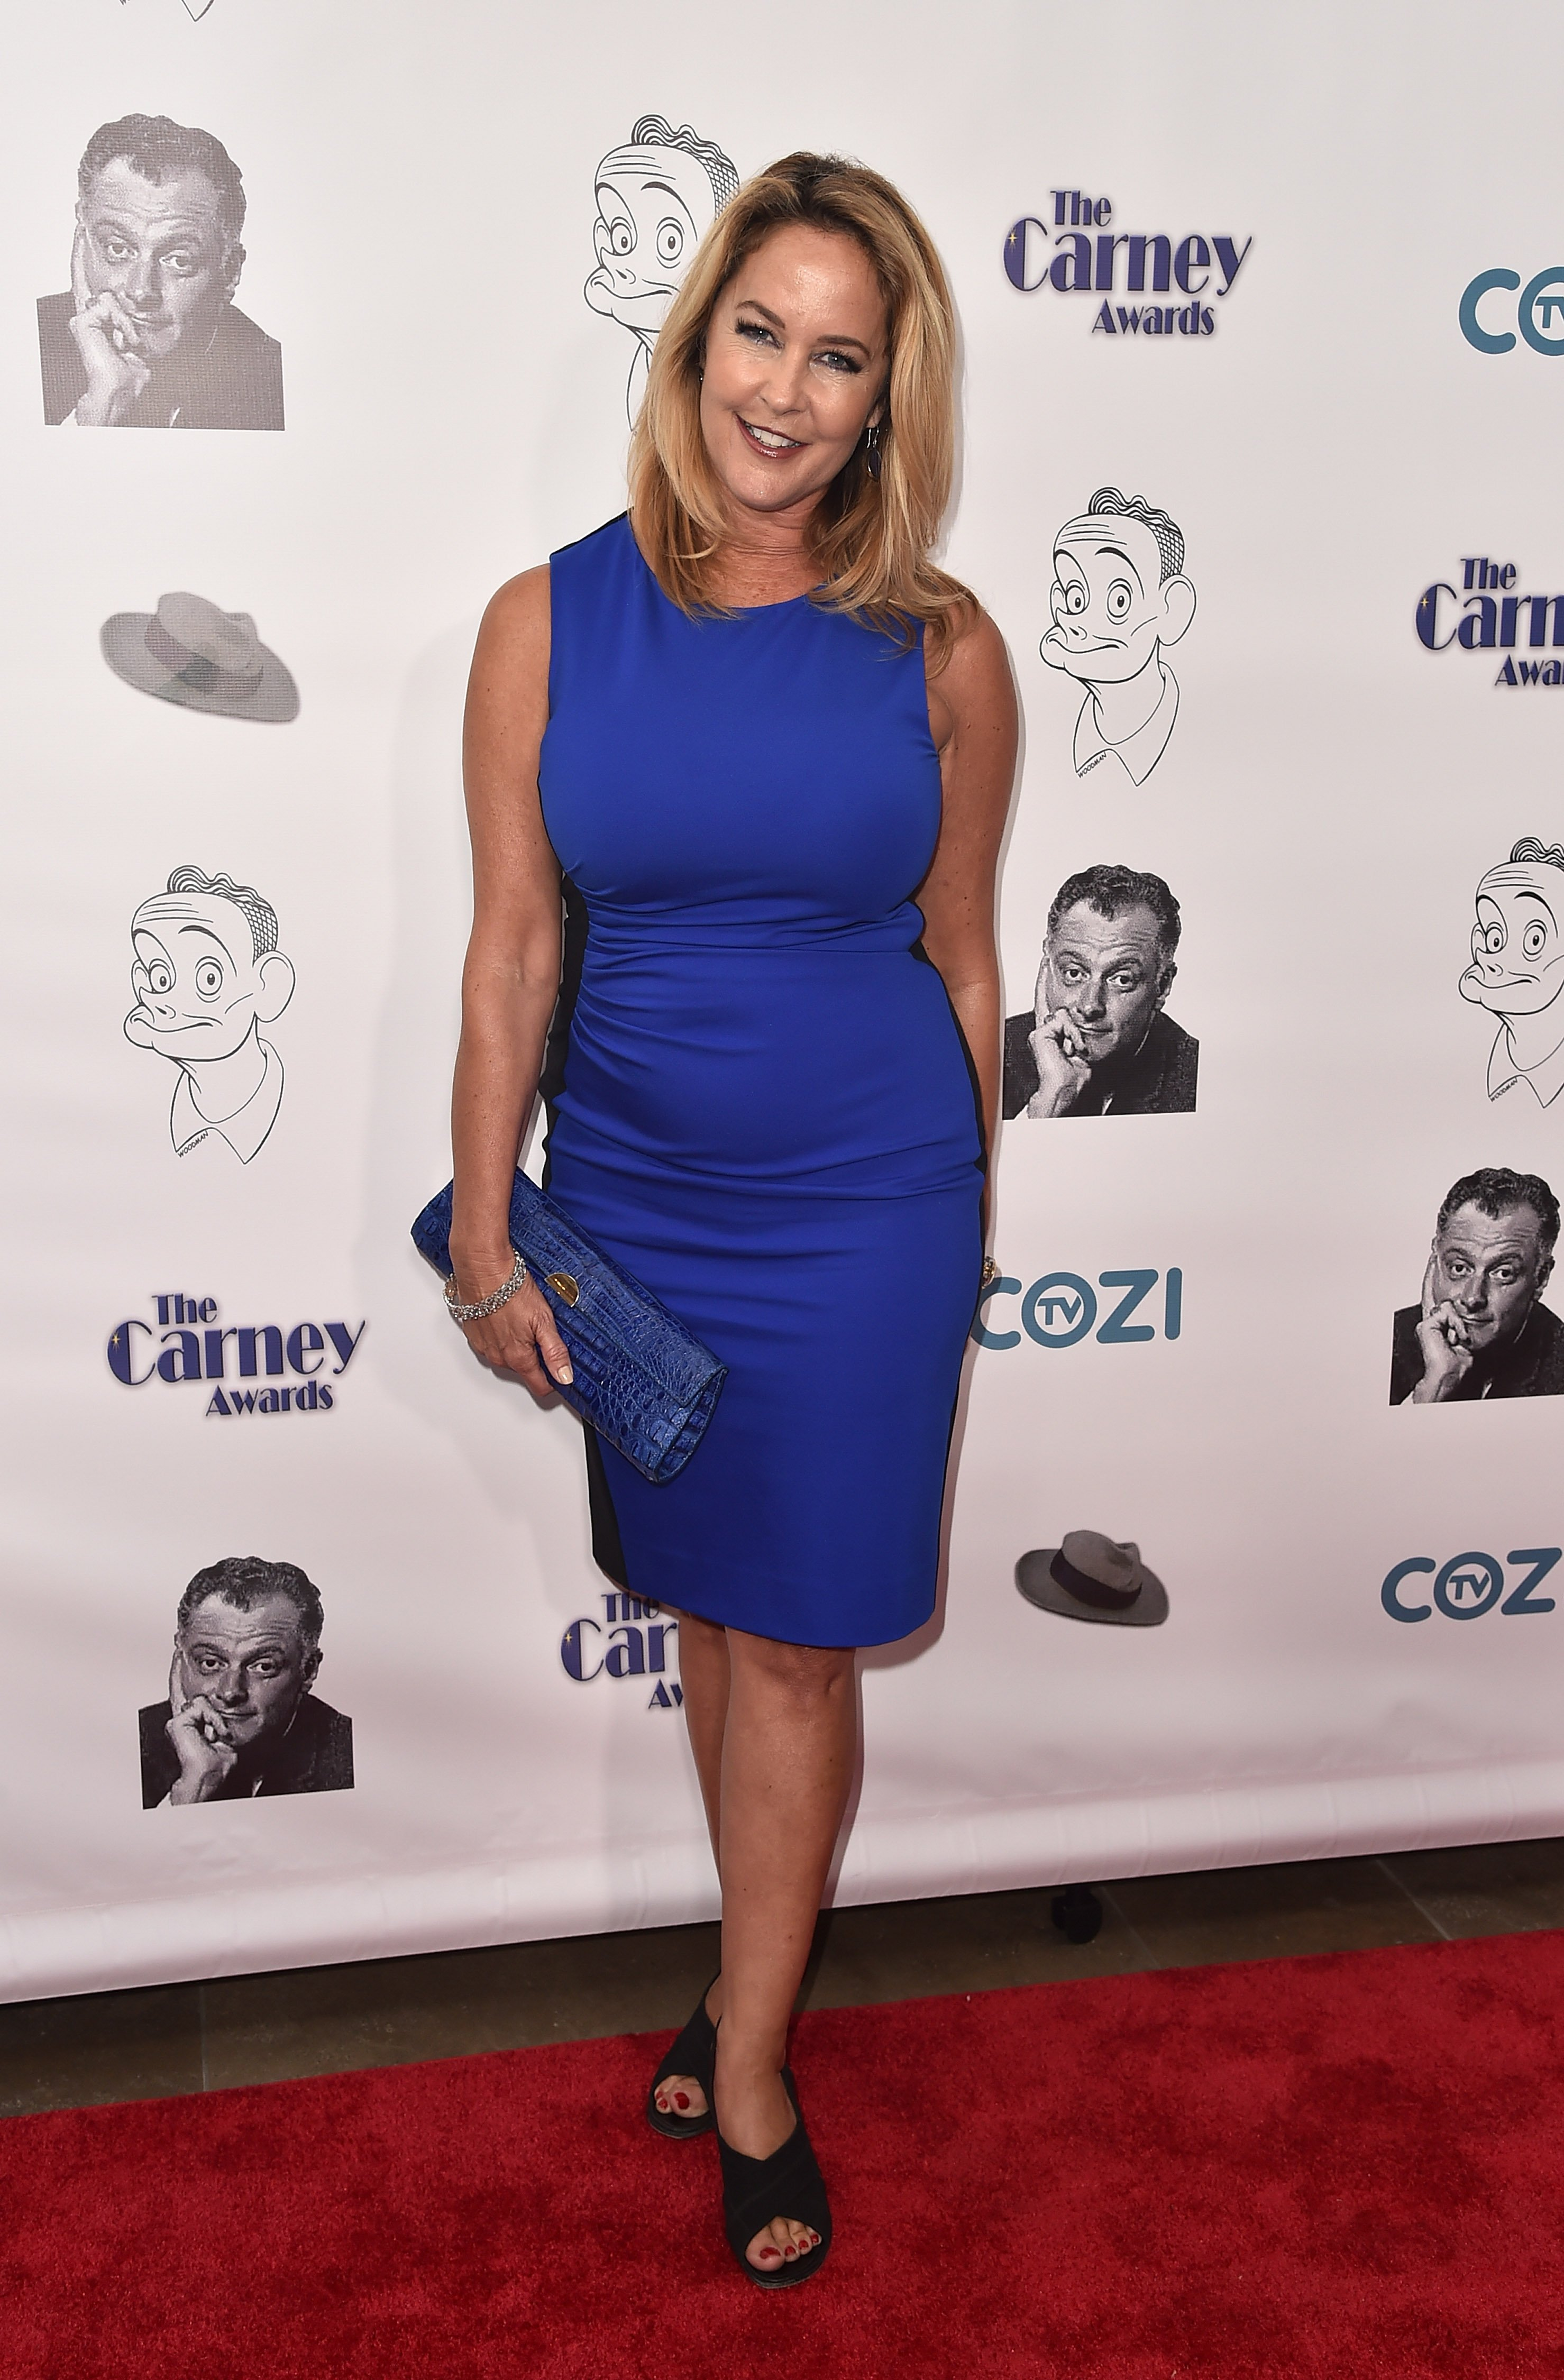 Erin Murphy on October 29, 2017 in Santa Monica, California | Photo: Getty Images